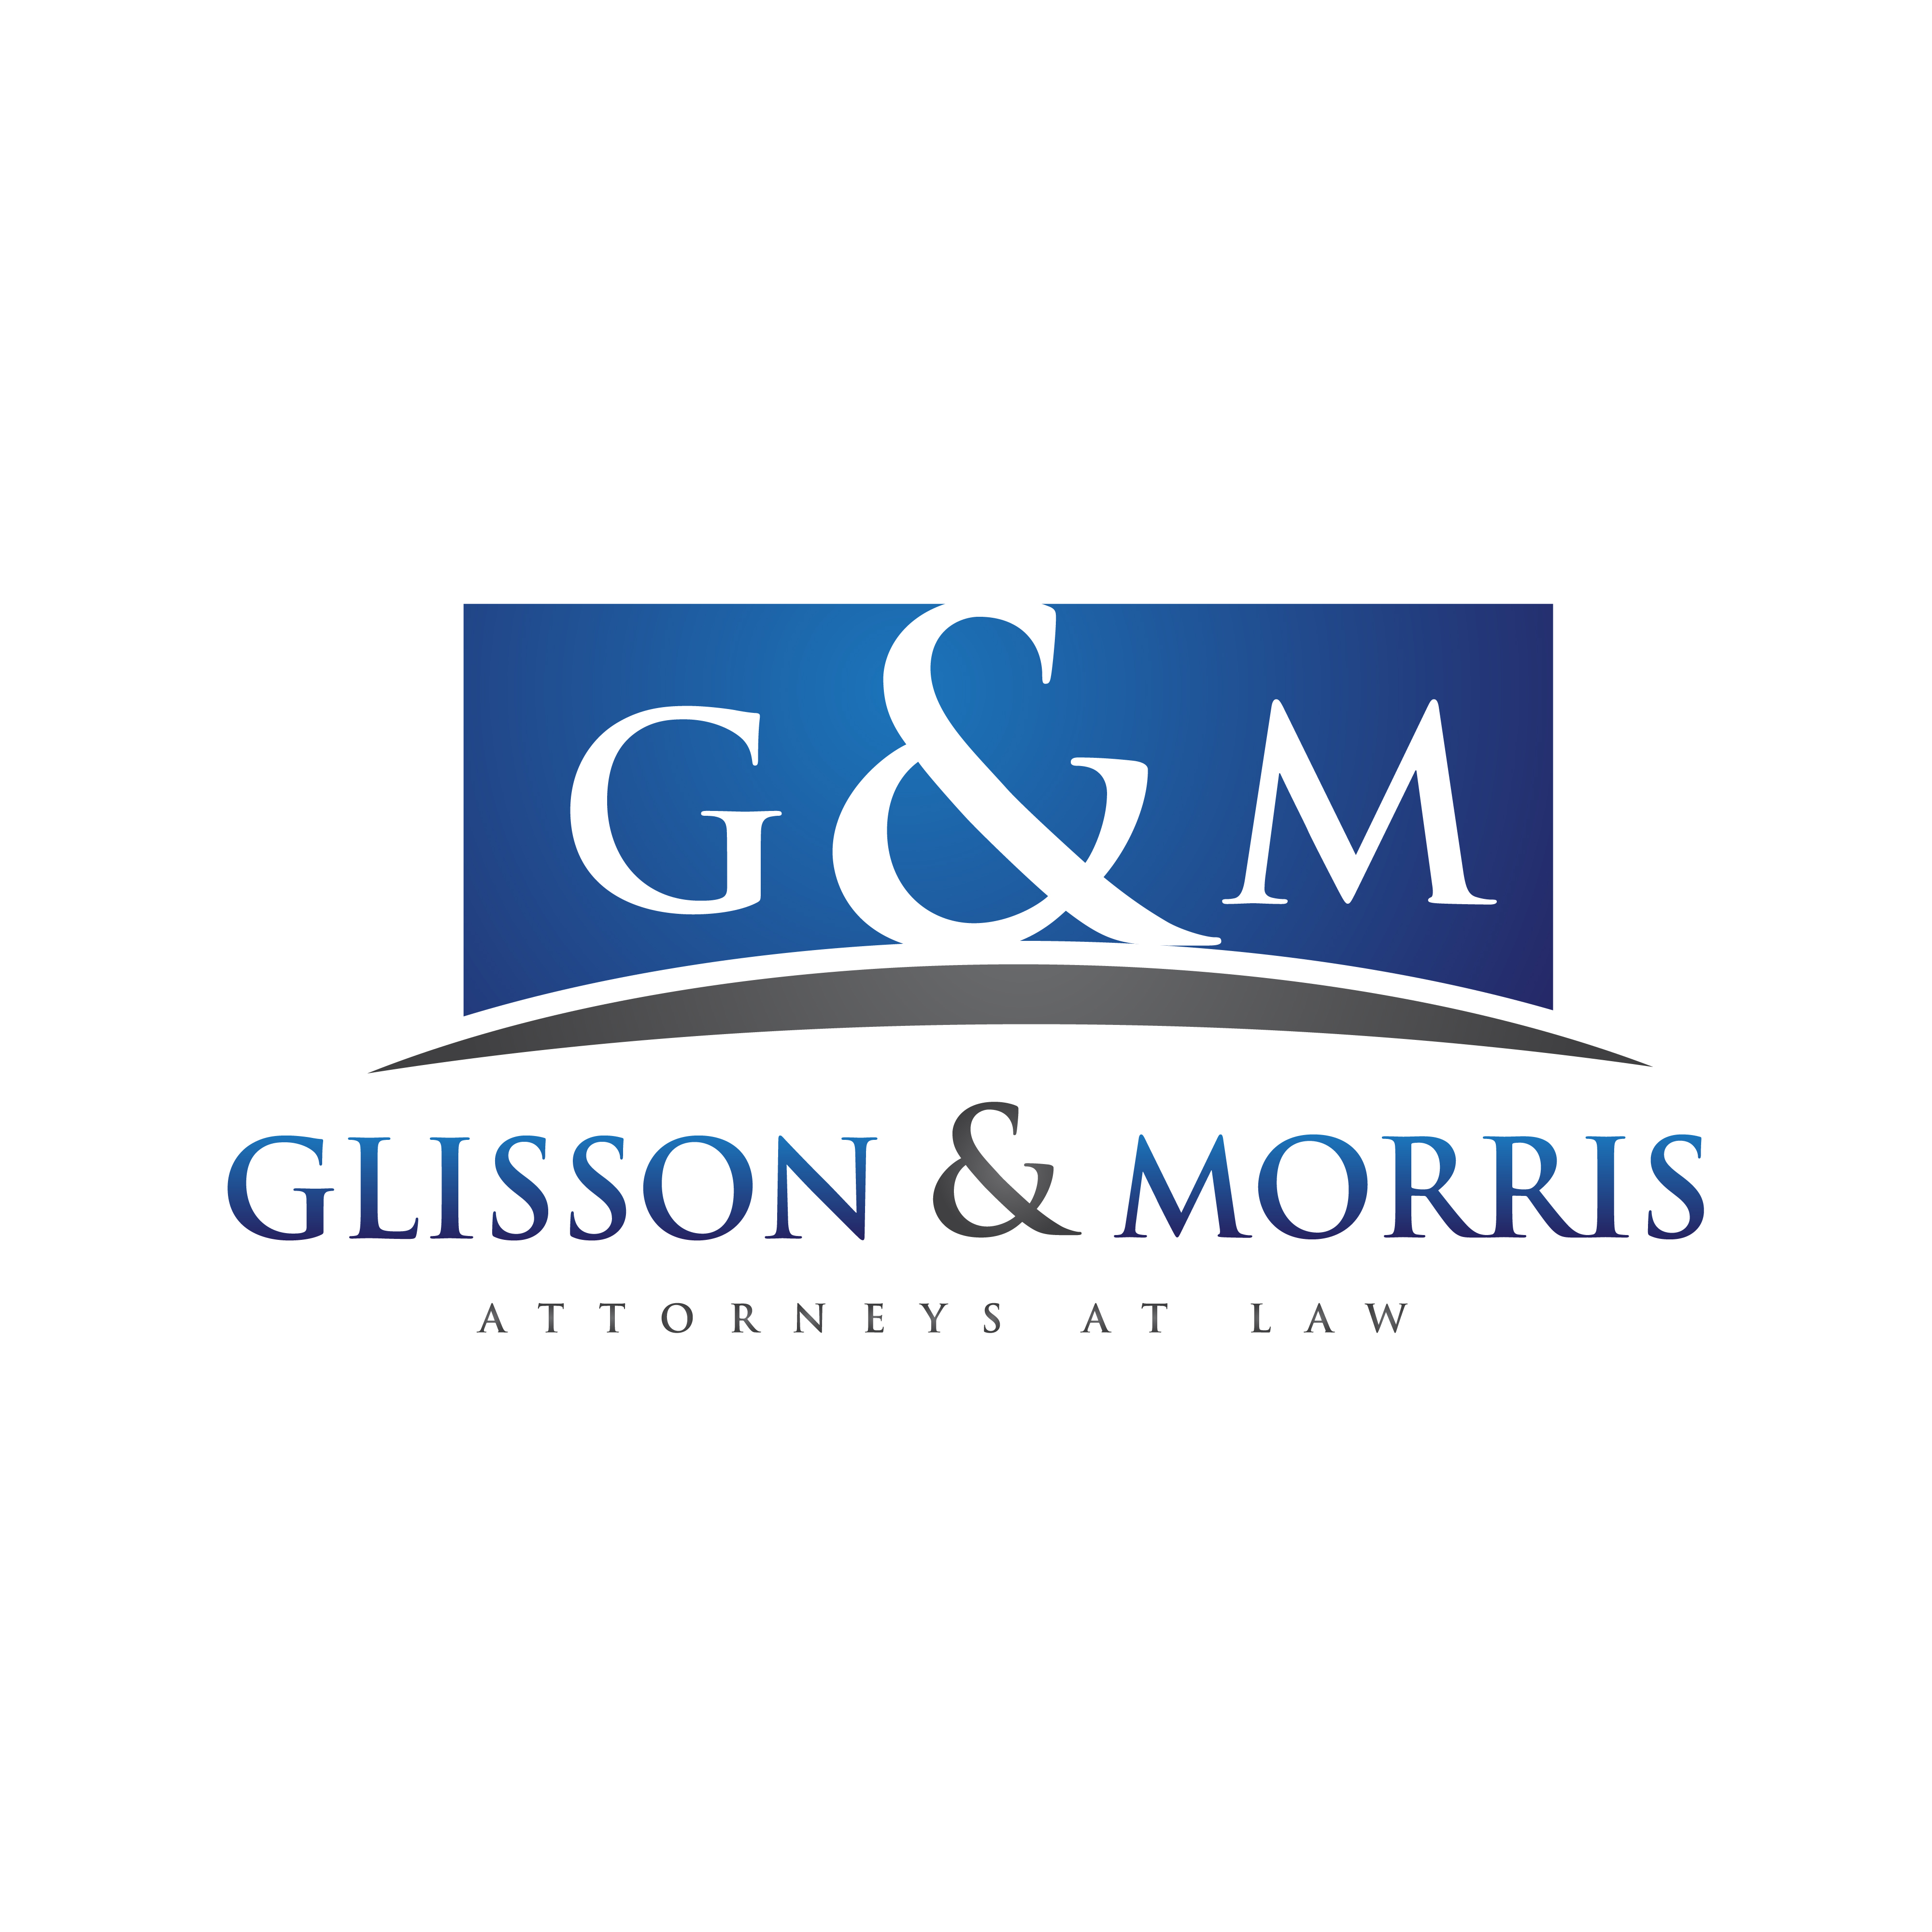 Glisson & Morris Attorneys At Law